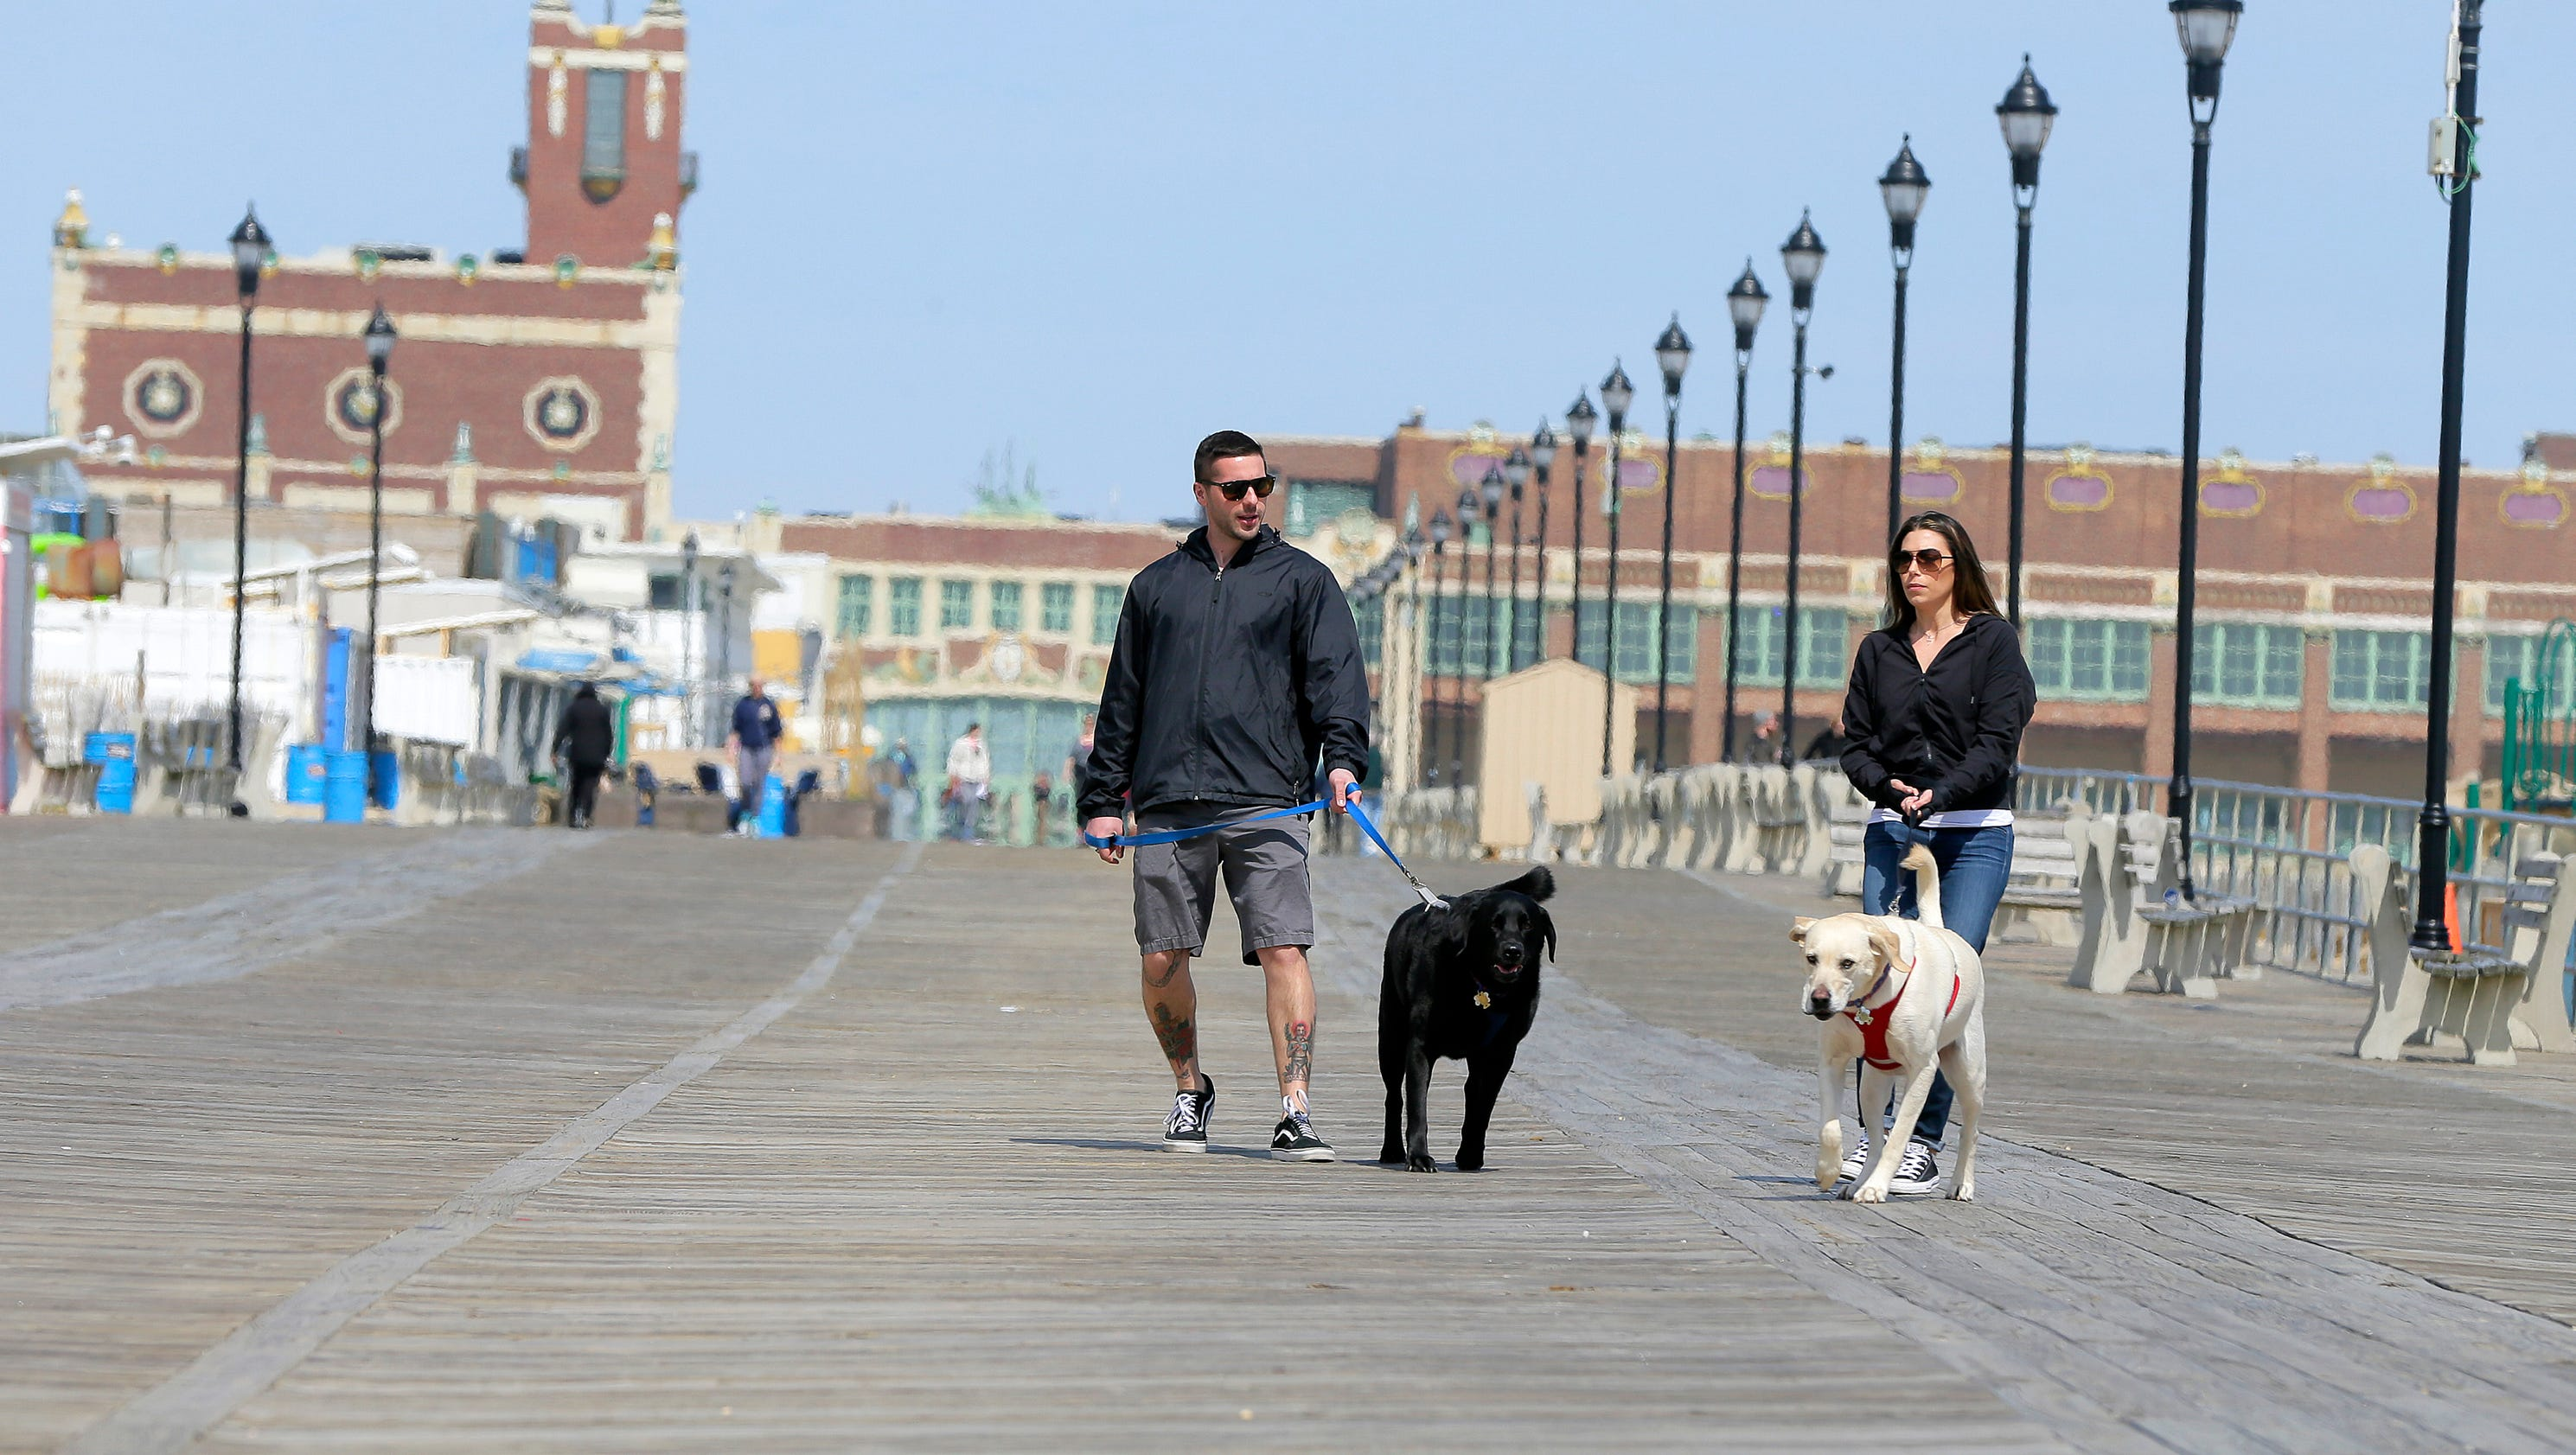 asbury park chat Chat with local people in asbury park and new jersey right now.